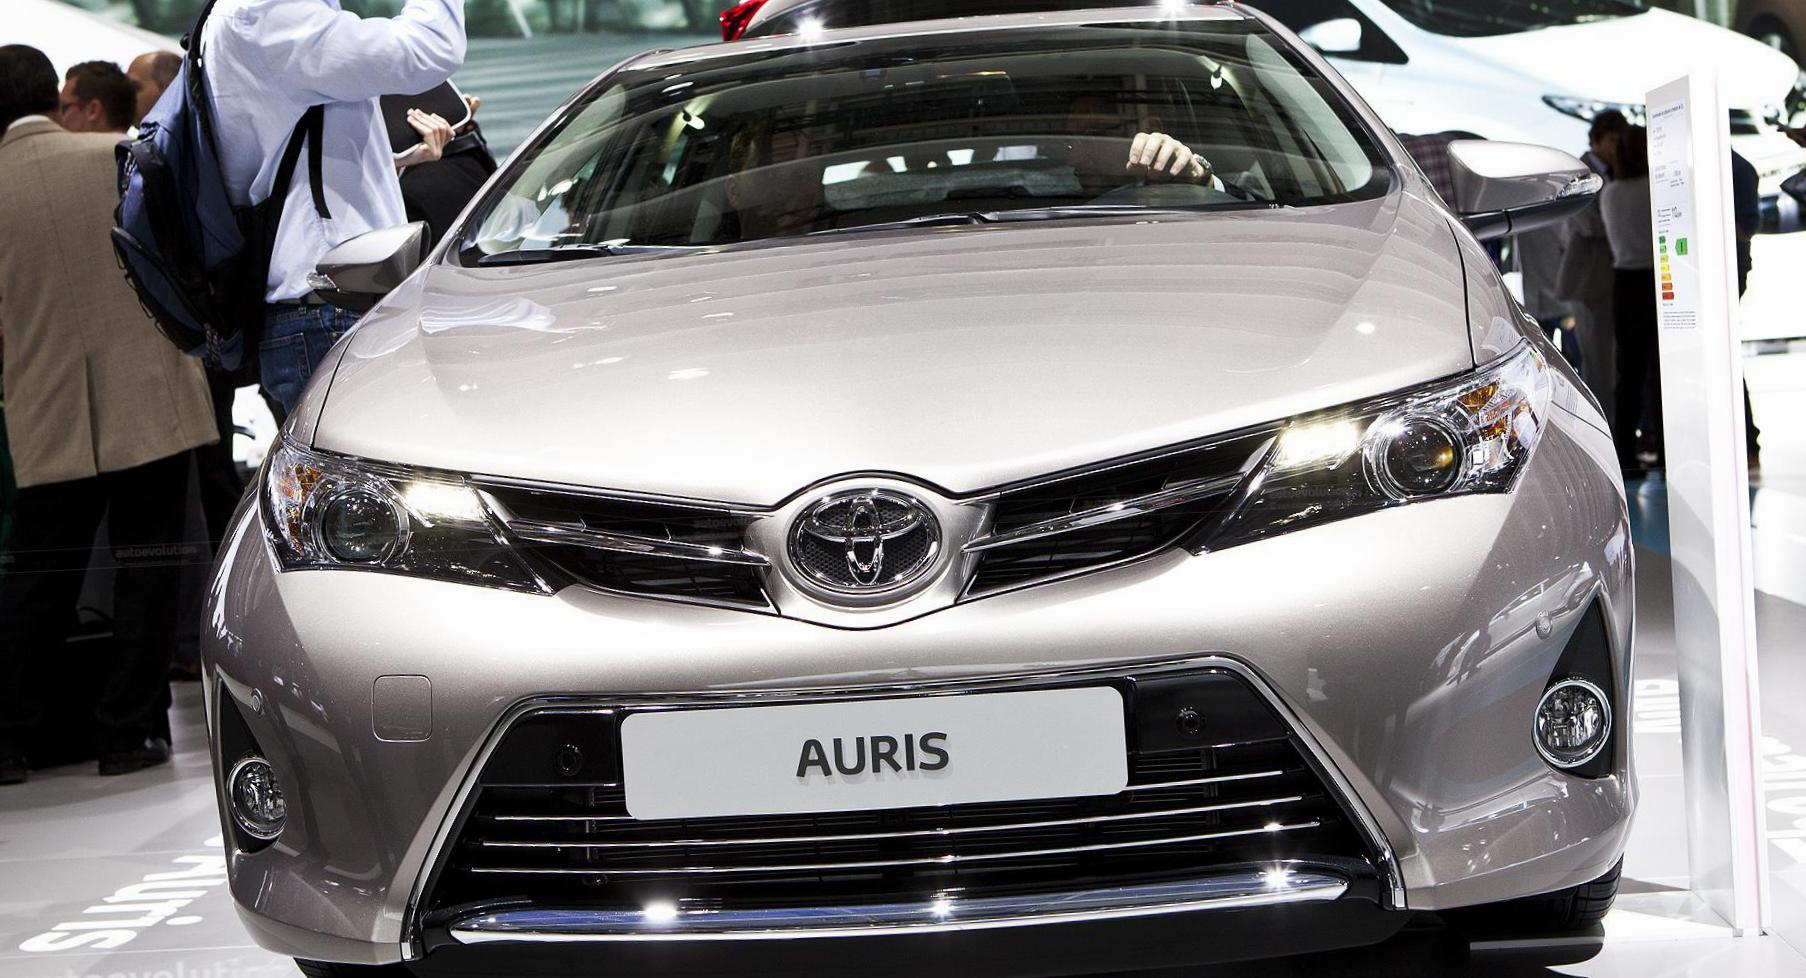 Auris Toyota Specification 2005